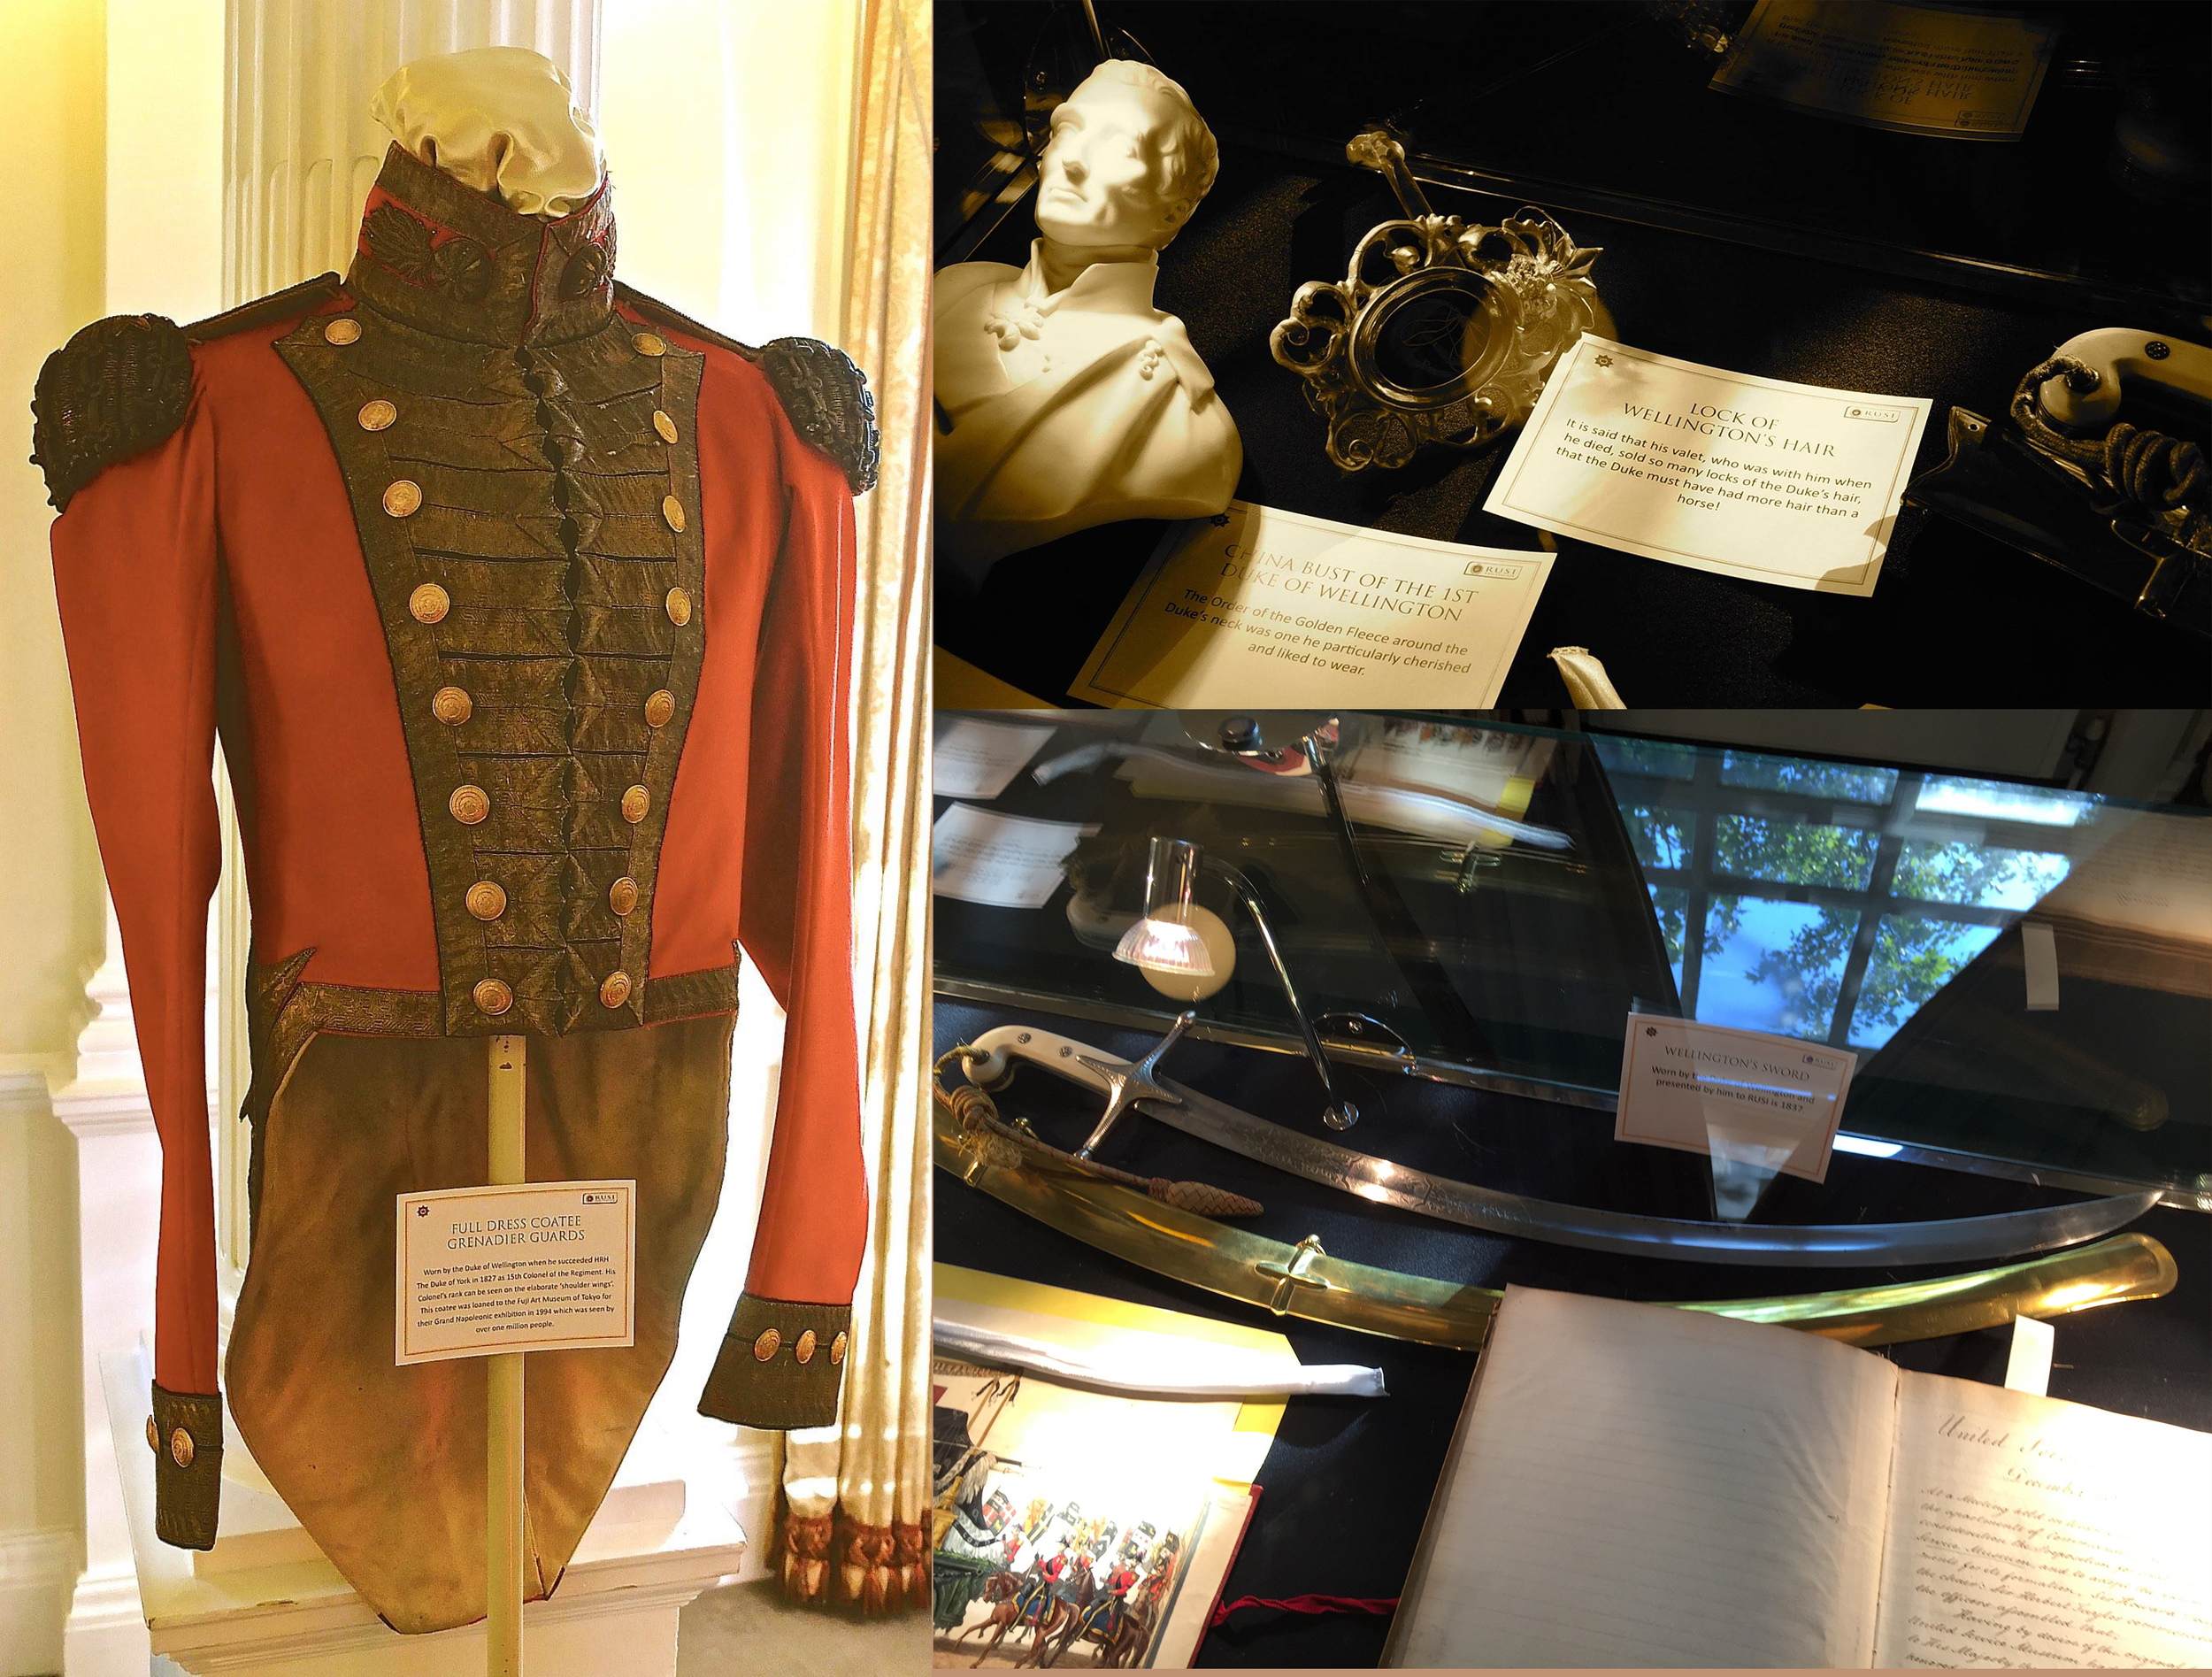 Duke_Wellington_Artefacts_Waterloo_200